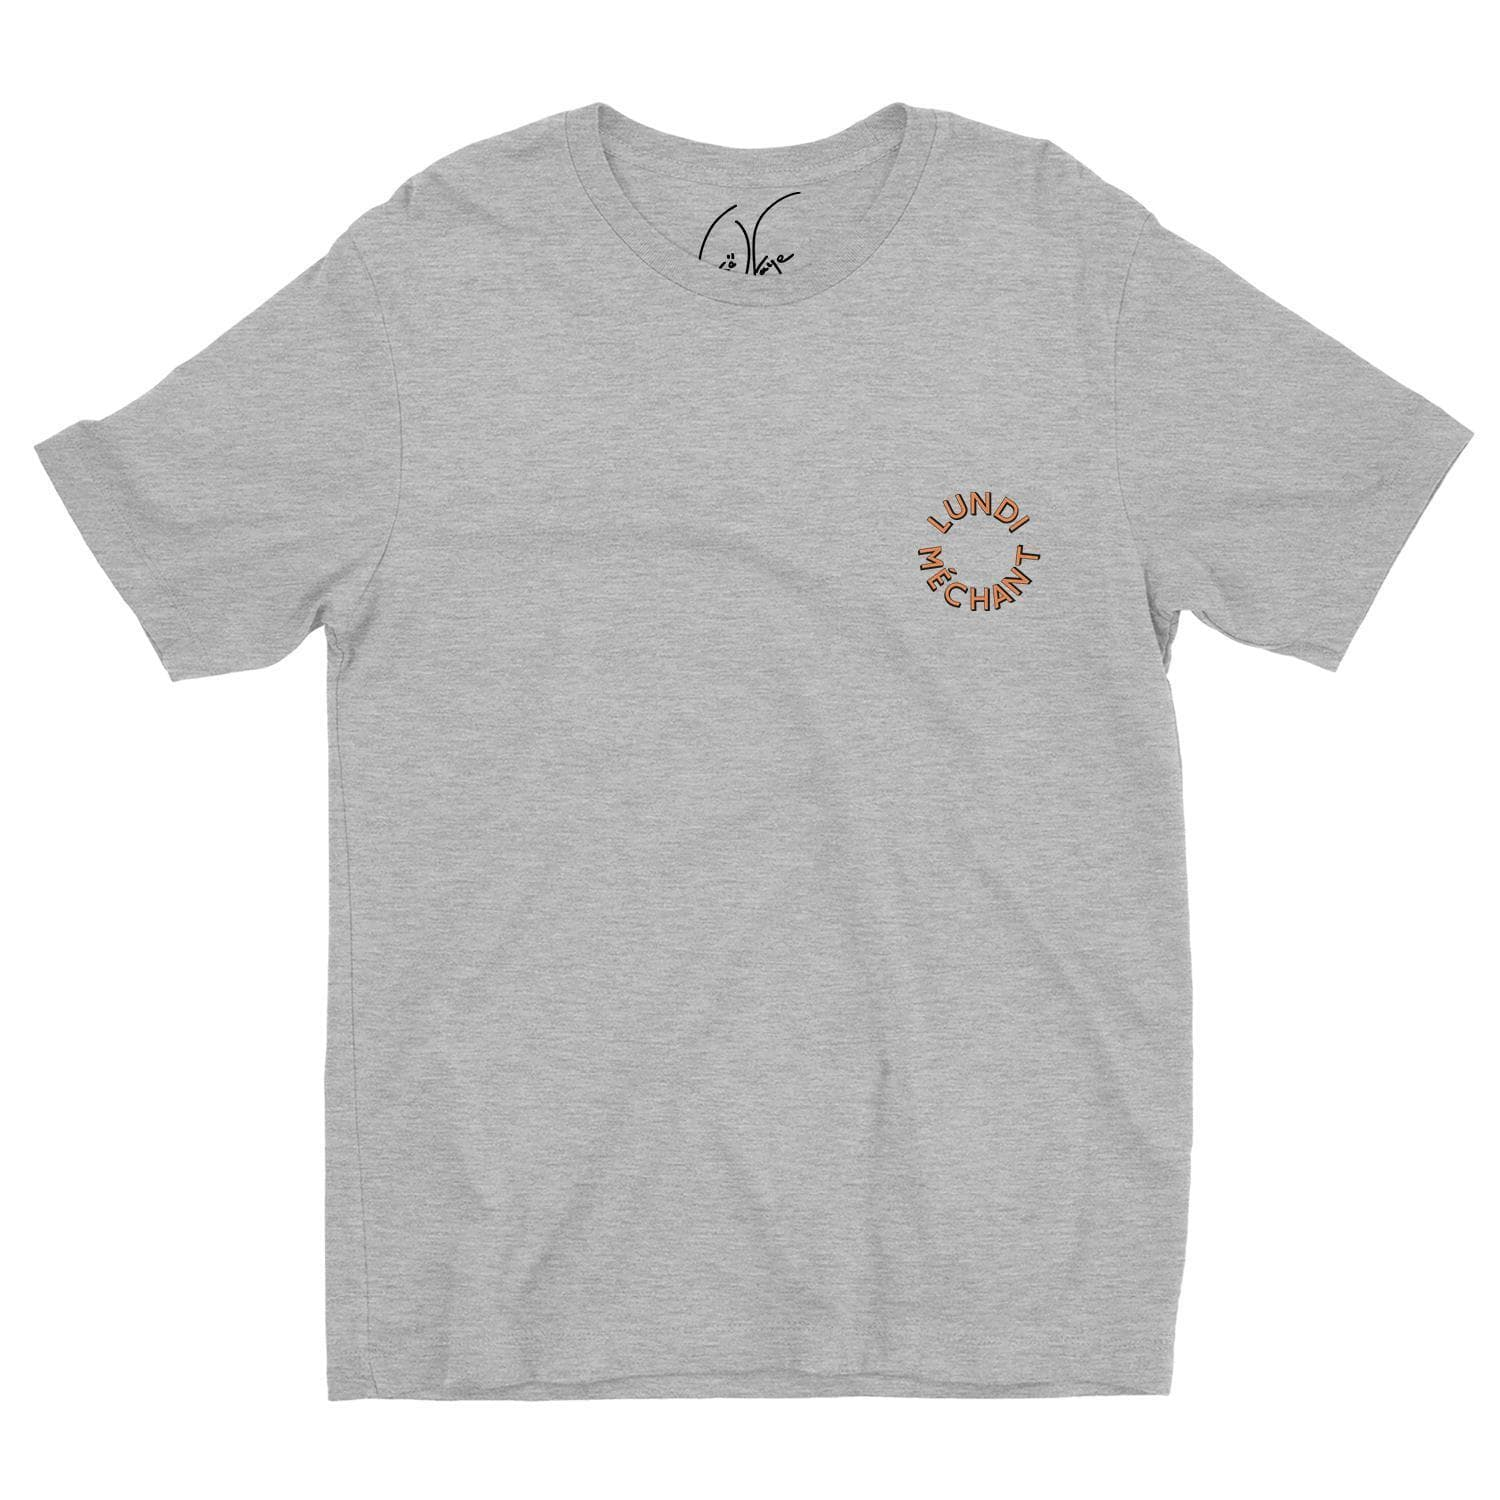 T-SHIRT LUNDI MECHANT CERCLE